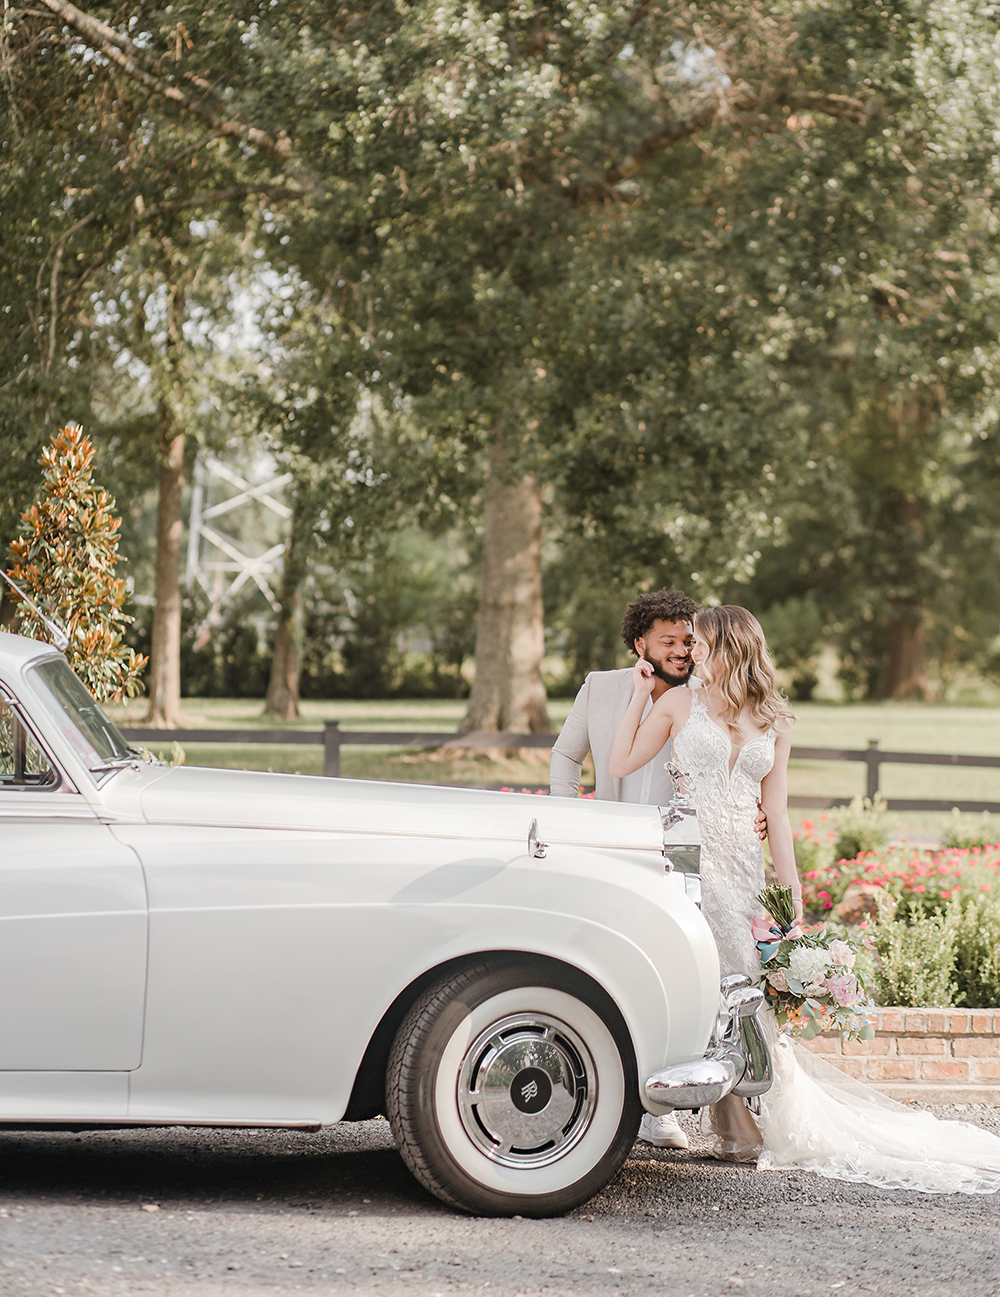 A man in a cream colored suit stands behind a woman in a long lace wedding gown next to a vintage white Rolls Royce on the property of wedding venue, The Carriage House, at a wedding styled shoot.